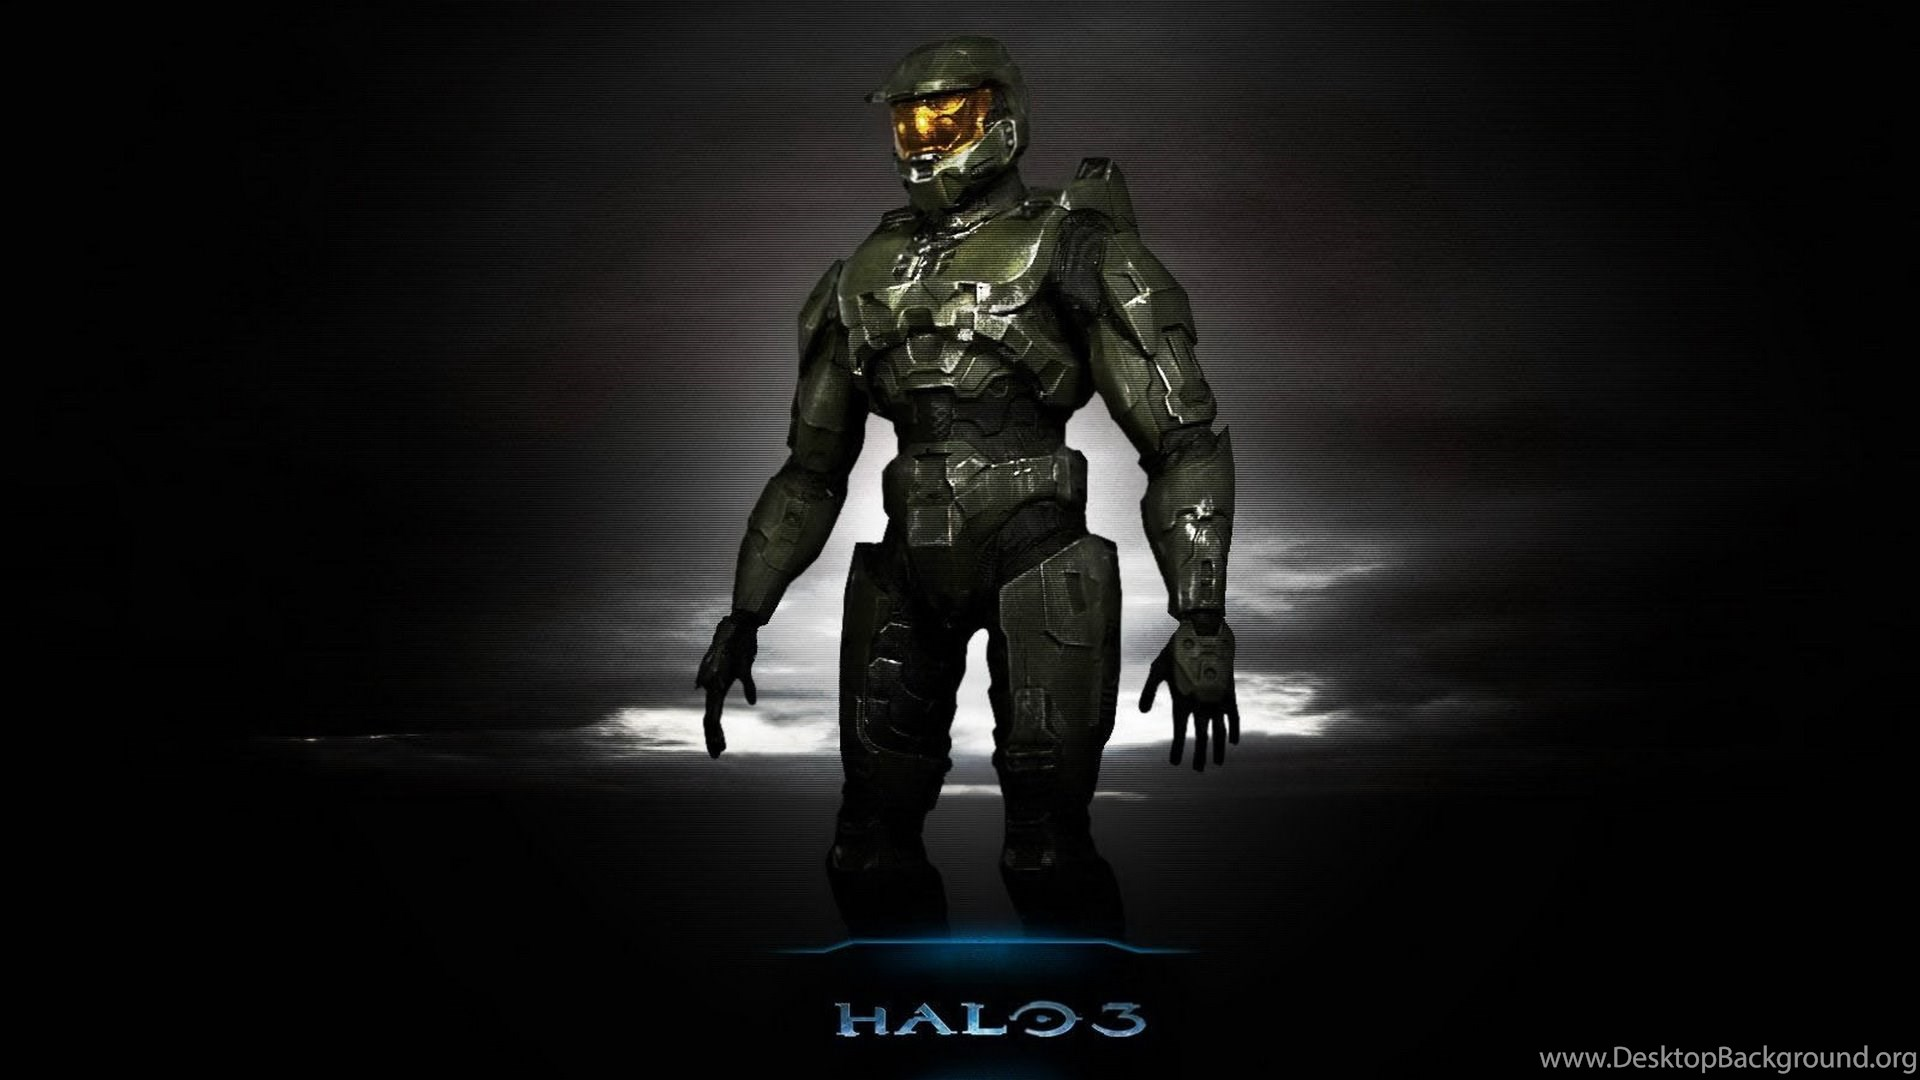 high resolution halo 3 widescreen wallpapers hd 14 full size